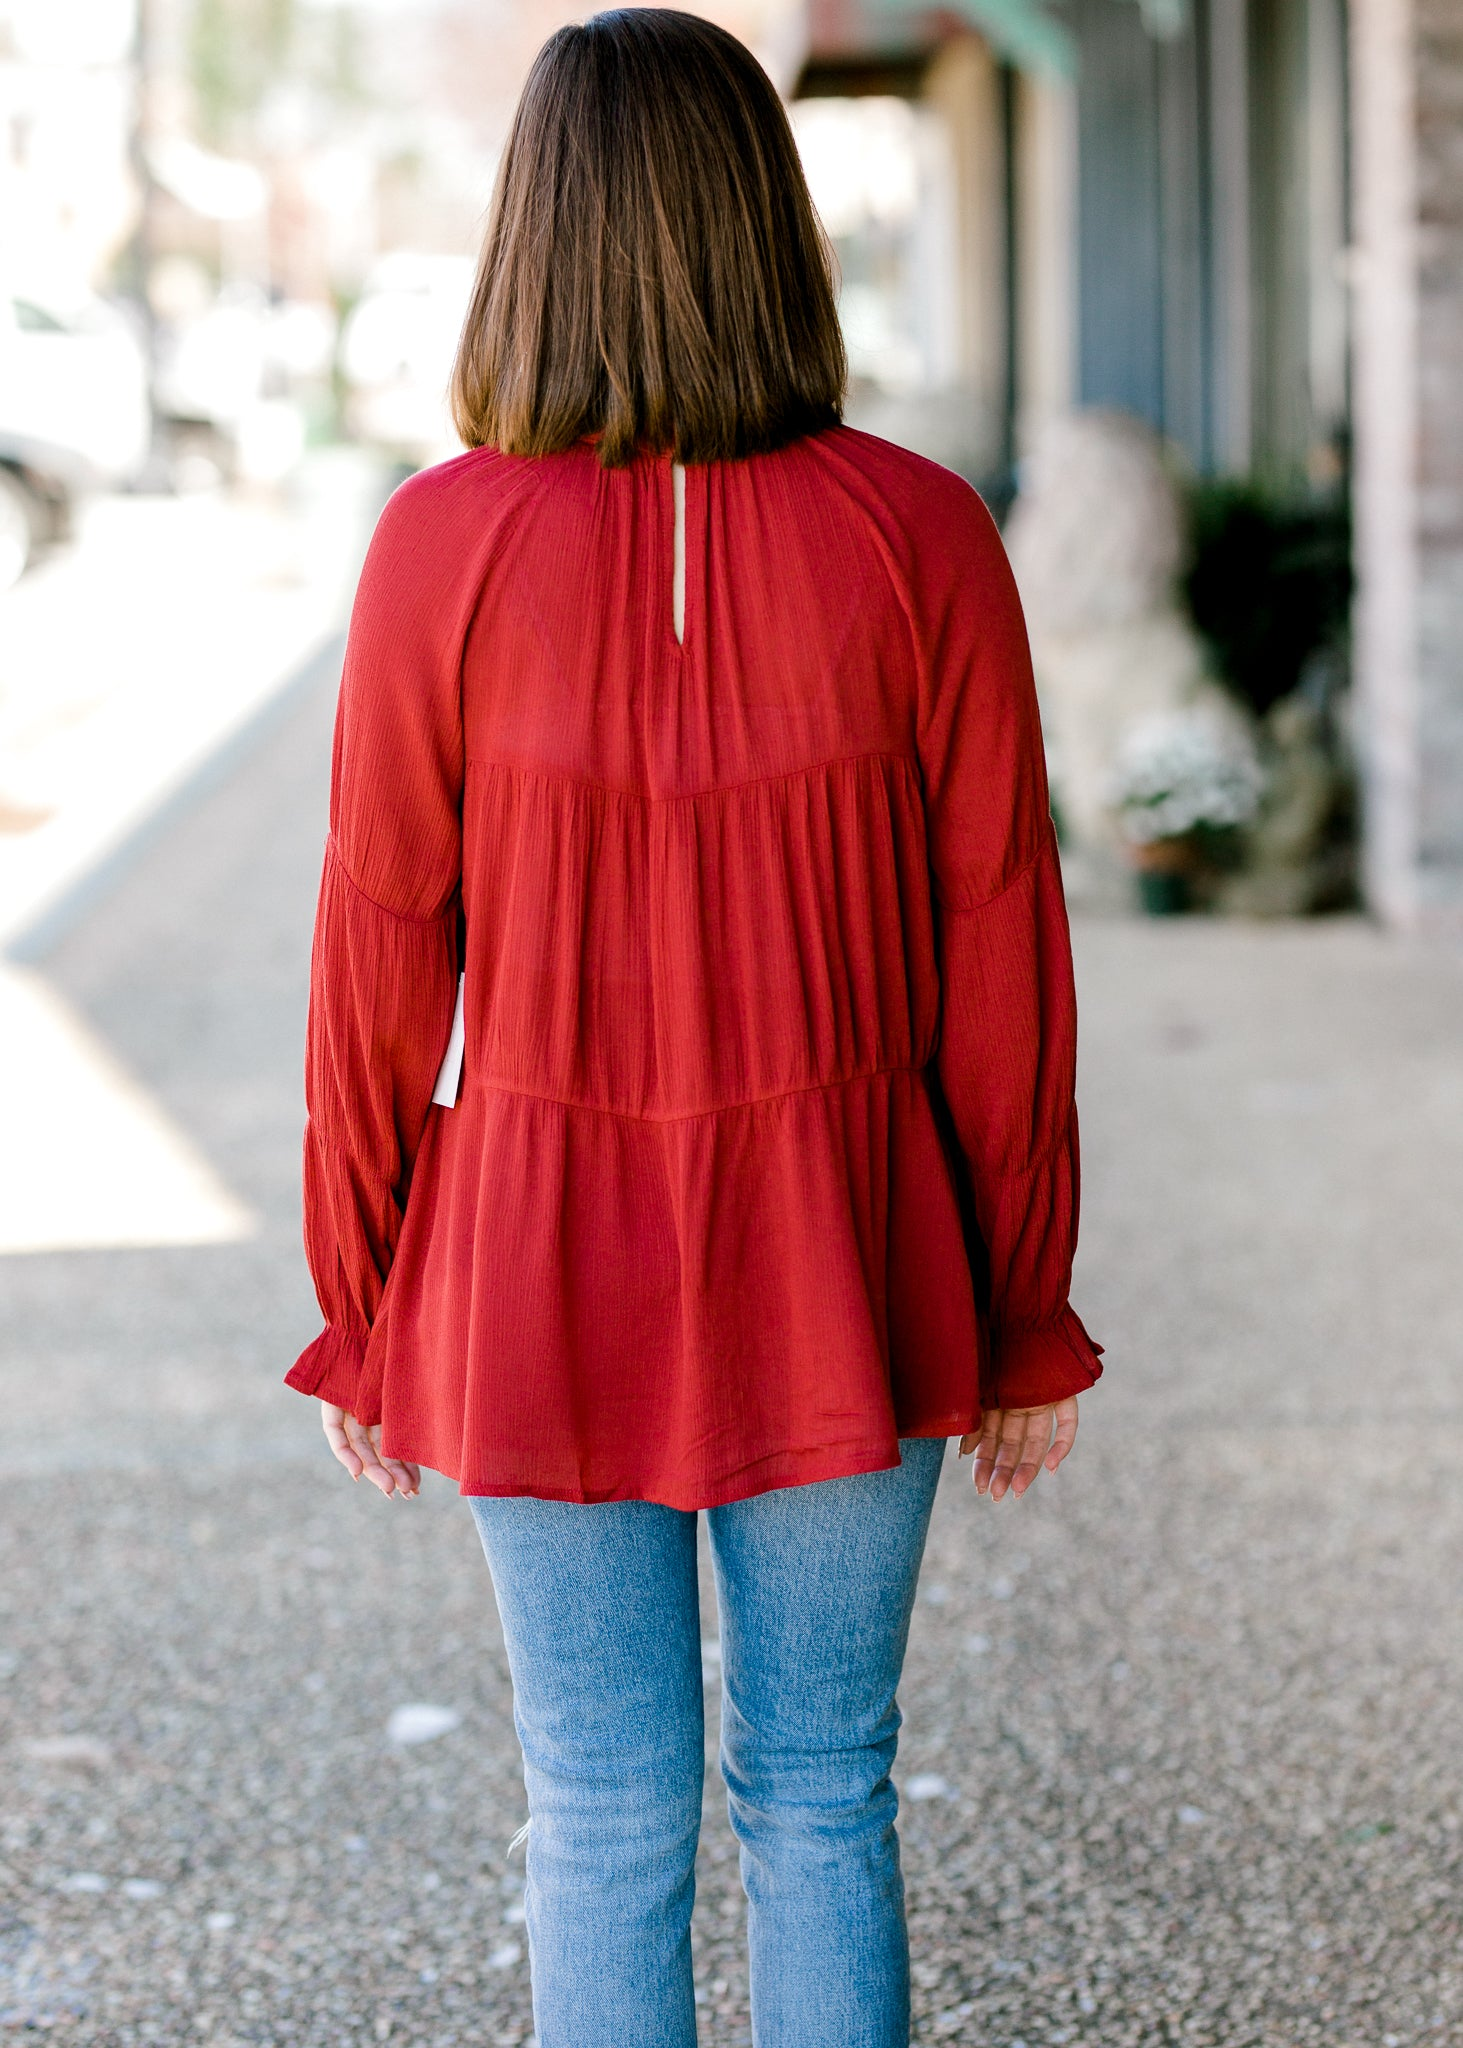 Cheery Ruby Top